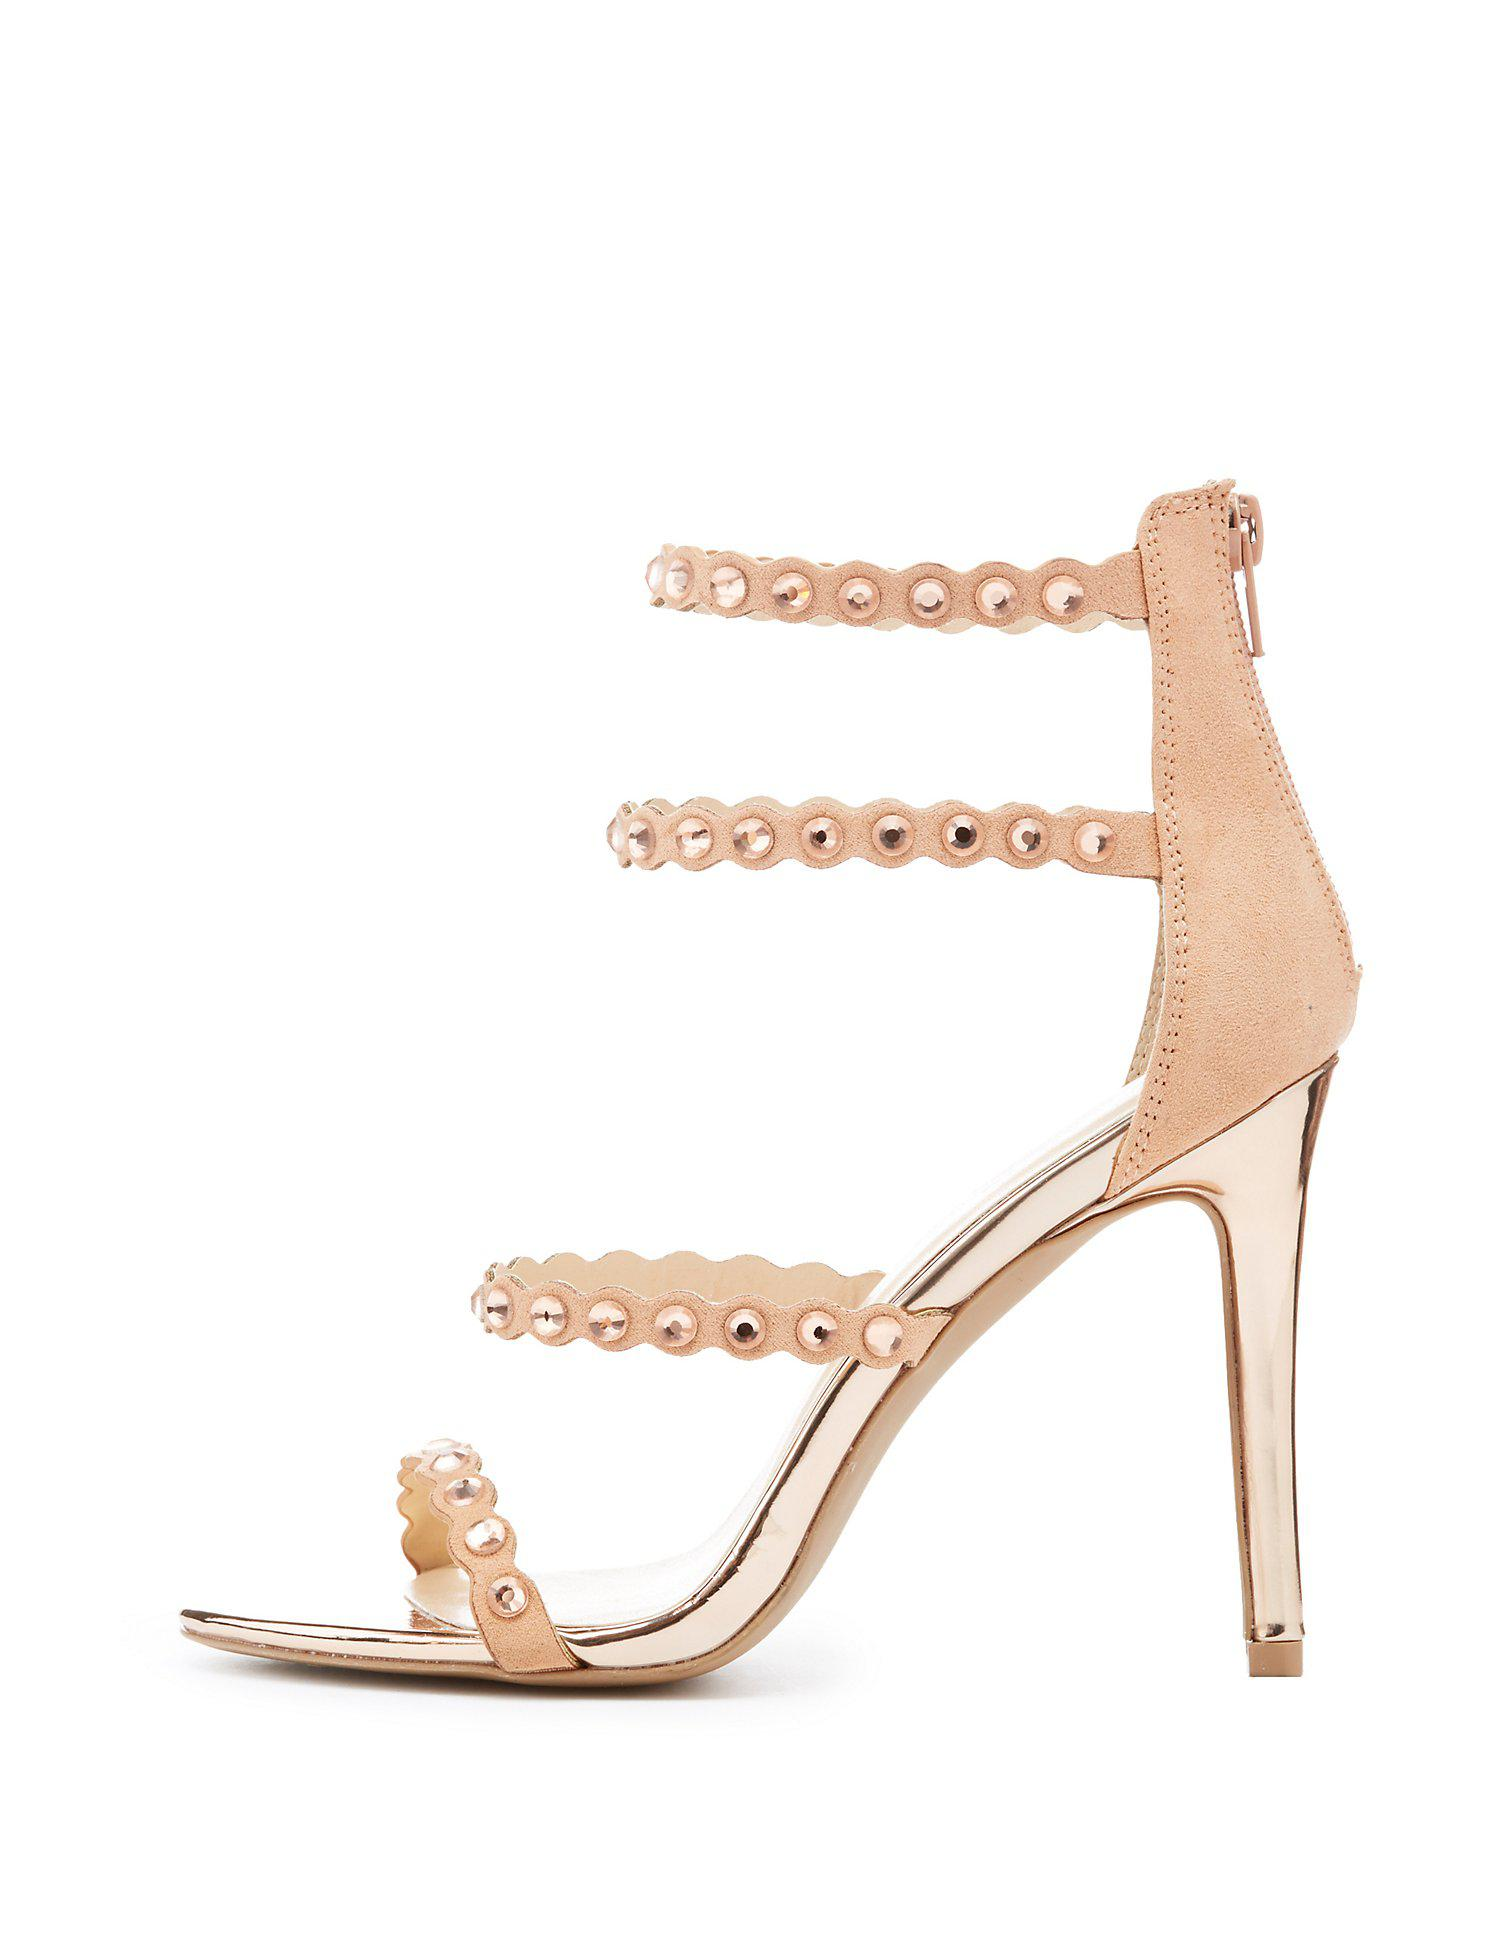 6800e96ed197 Lyst - Charlotte Russe Qupid Studded Strappy Caged Sandals